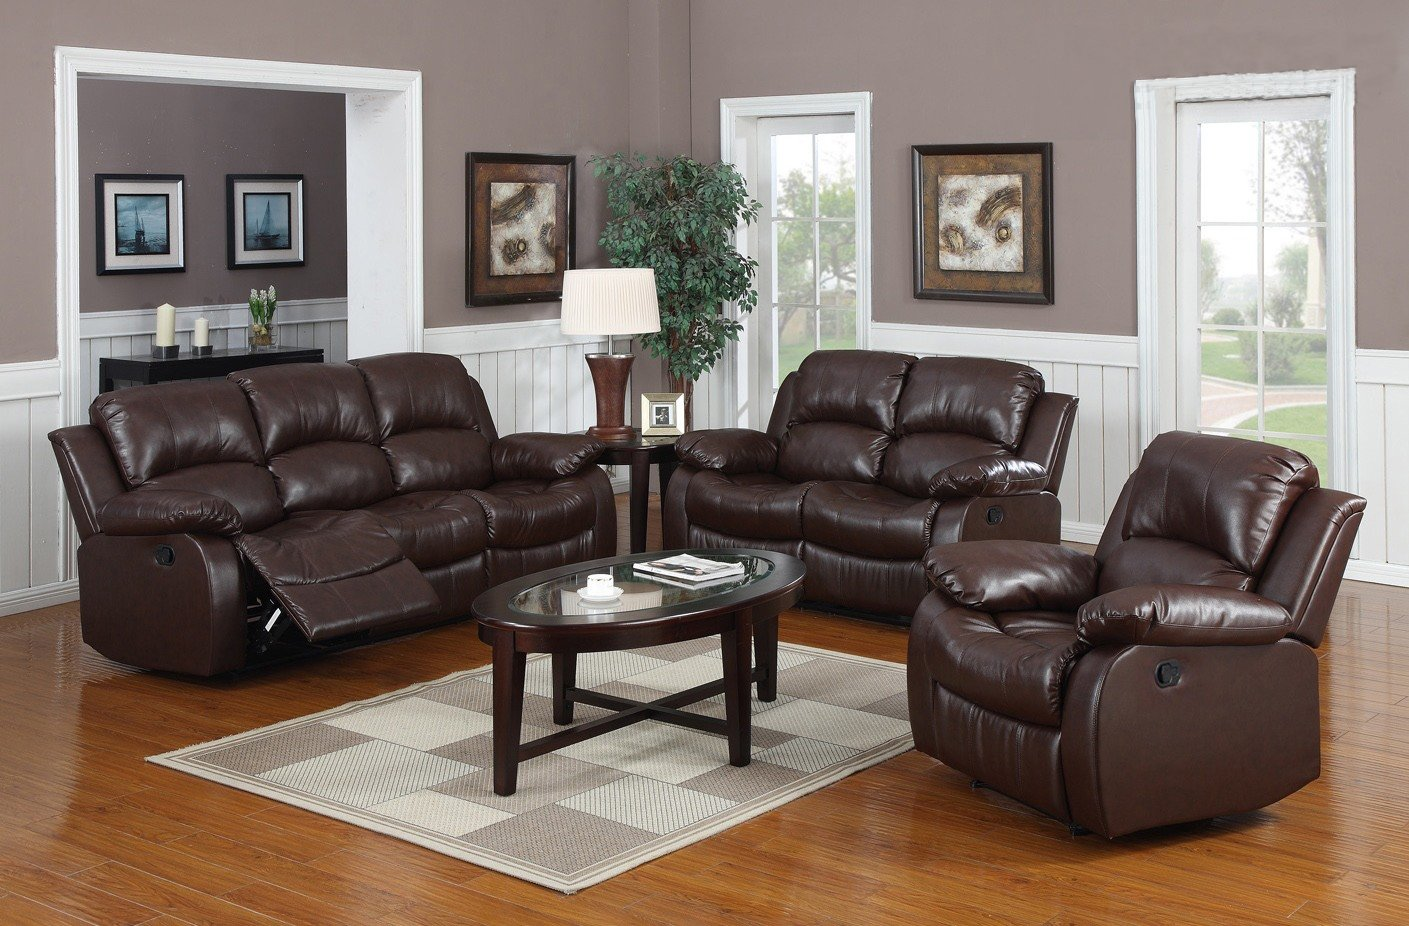 Huntington 3-pc Bonded Leather Sofa & Loveseat & Chair Set With 5  Recliners: Amazon.ca: Home & Kitchen